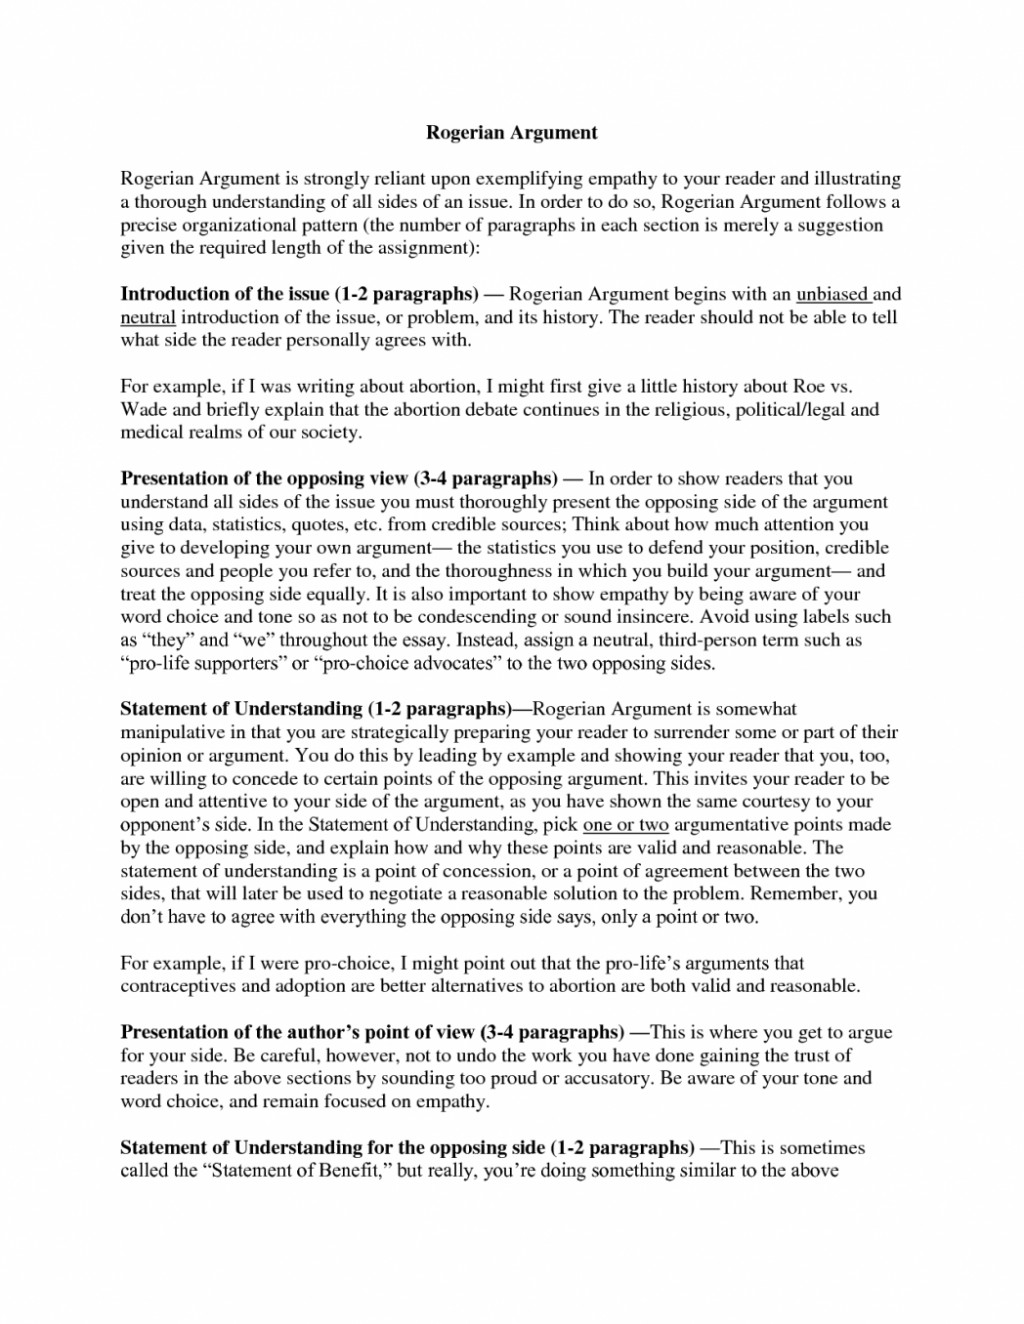 023 Rogerian Argument Essays Co How To Write An Argumentative About Abortion On Sles Of 1048x1356 Shocking Essay Example Topic Examples Outline Large